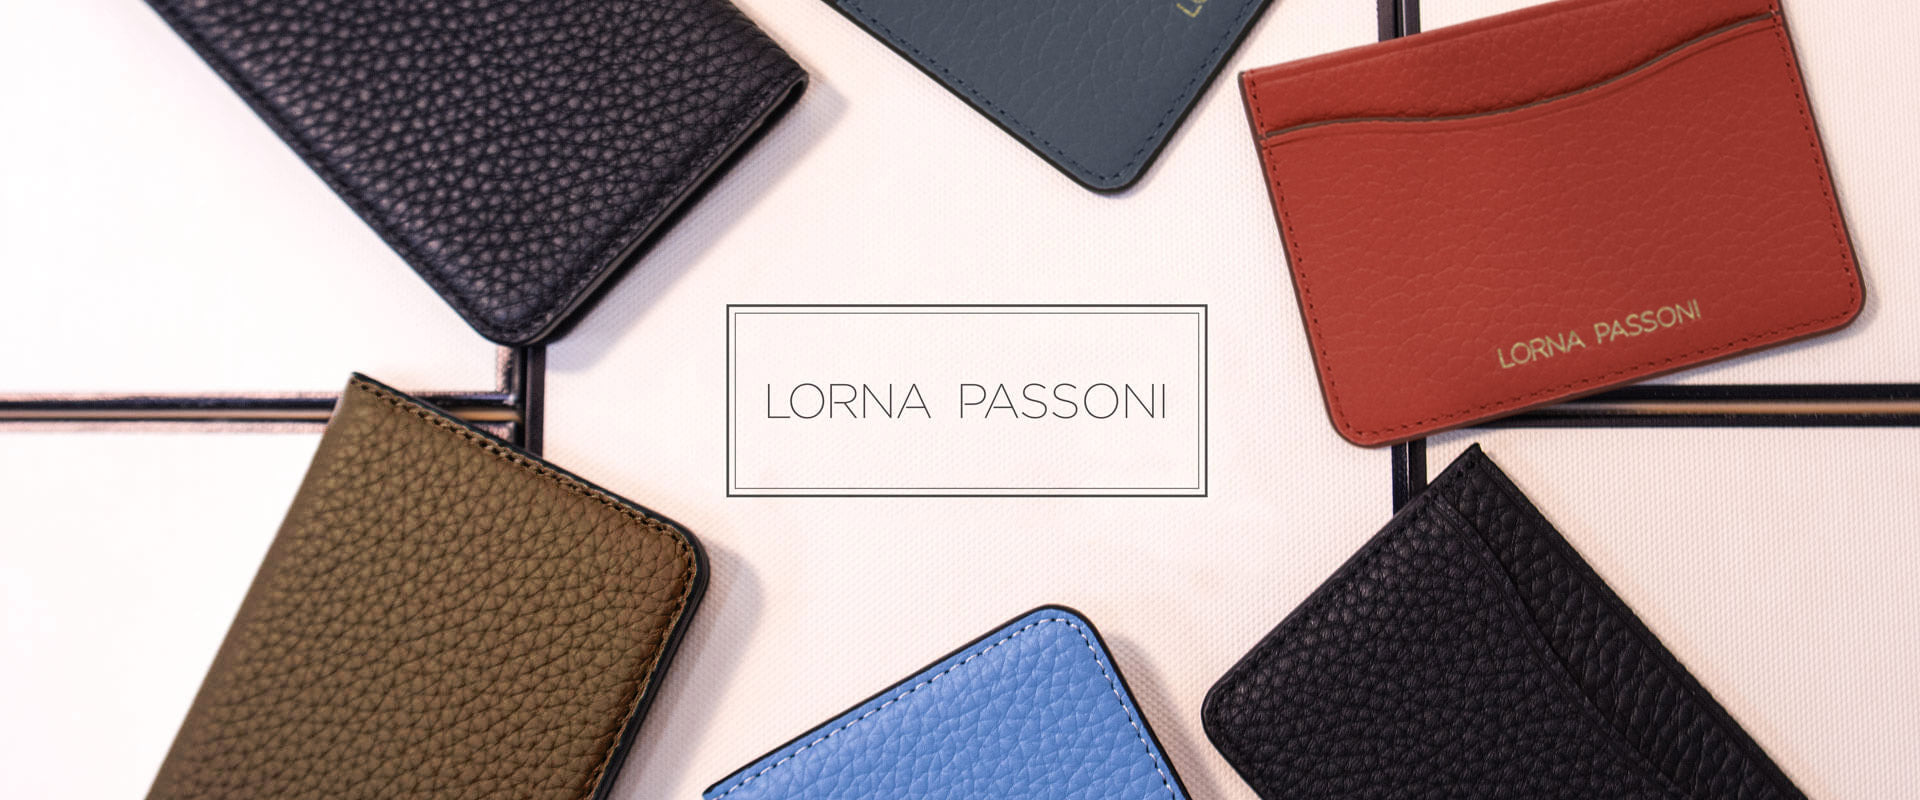 Accessories - LORNA PASSONI - Leather Folio Case for iPhone XS/X